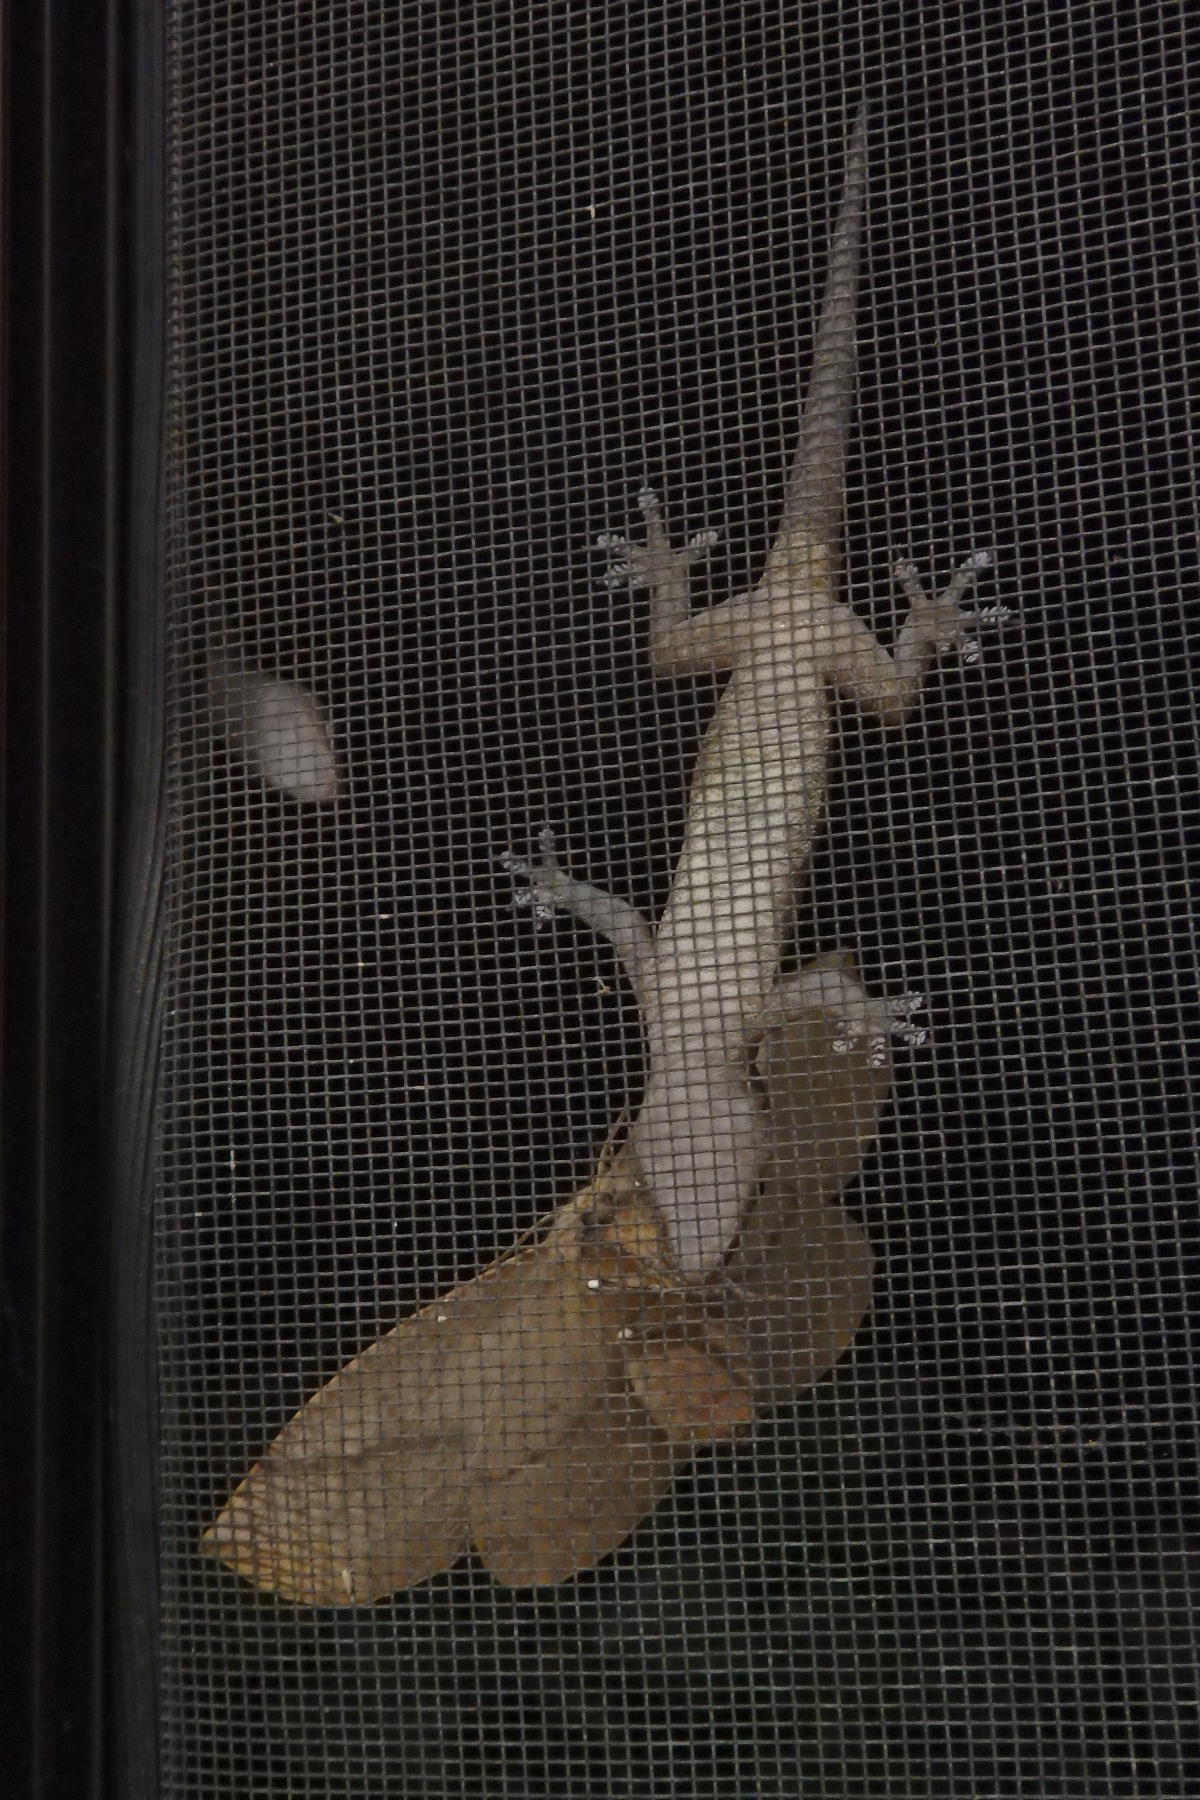 asian house gecko eating a moth